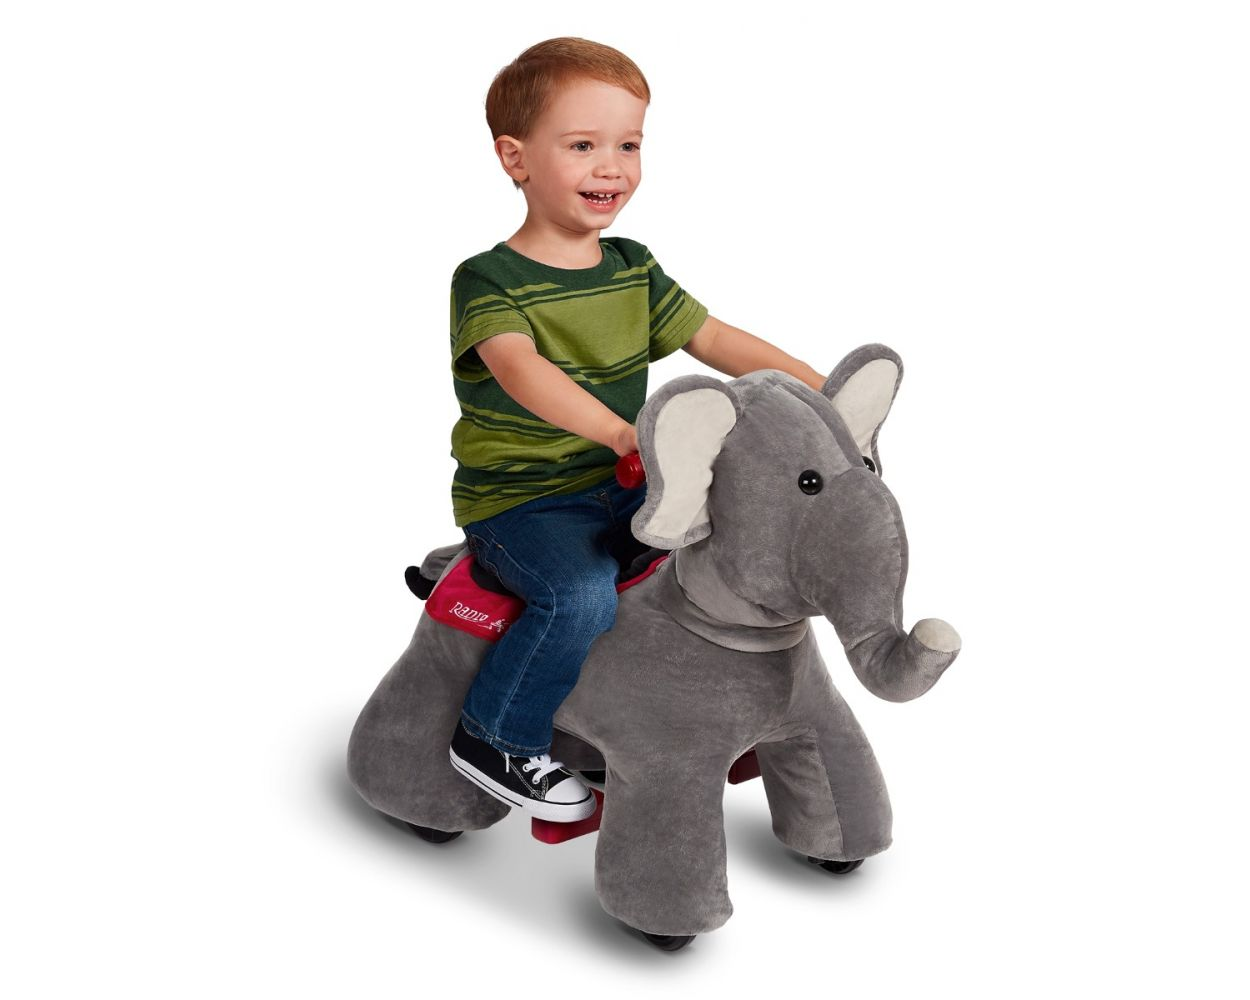 Peanut: Electric Ride-On Elephant with Sounds